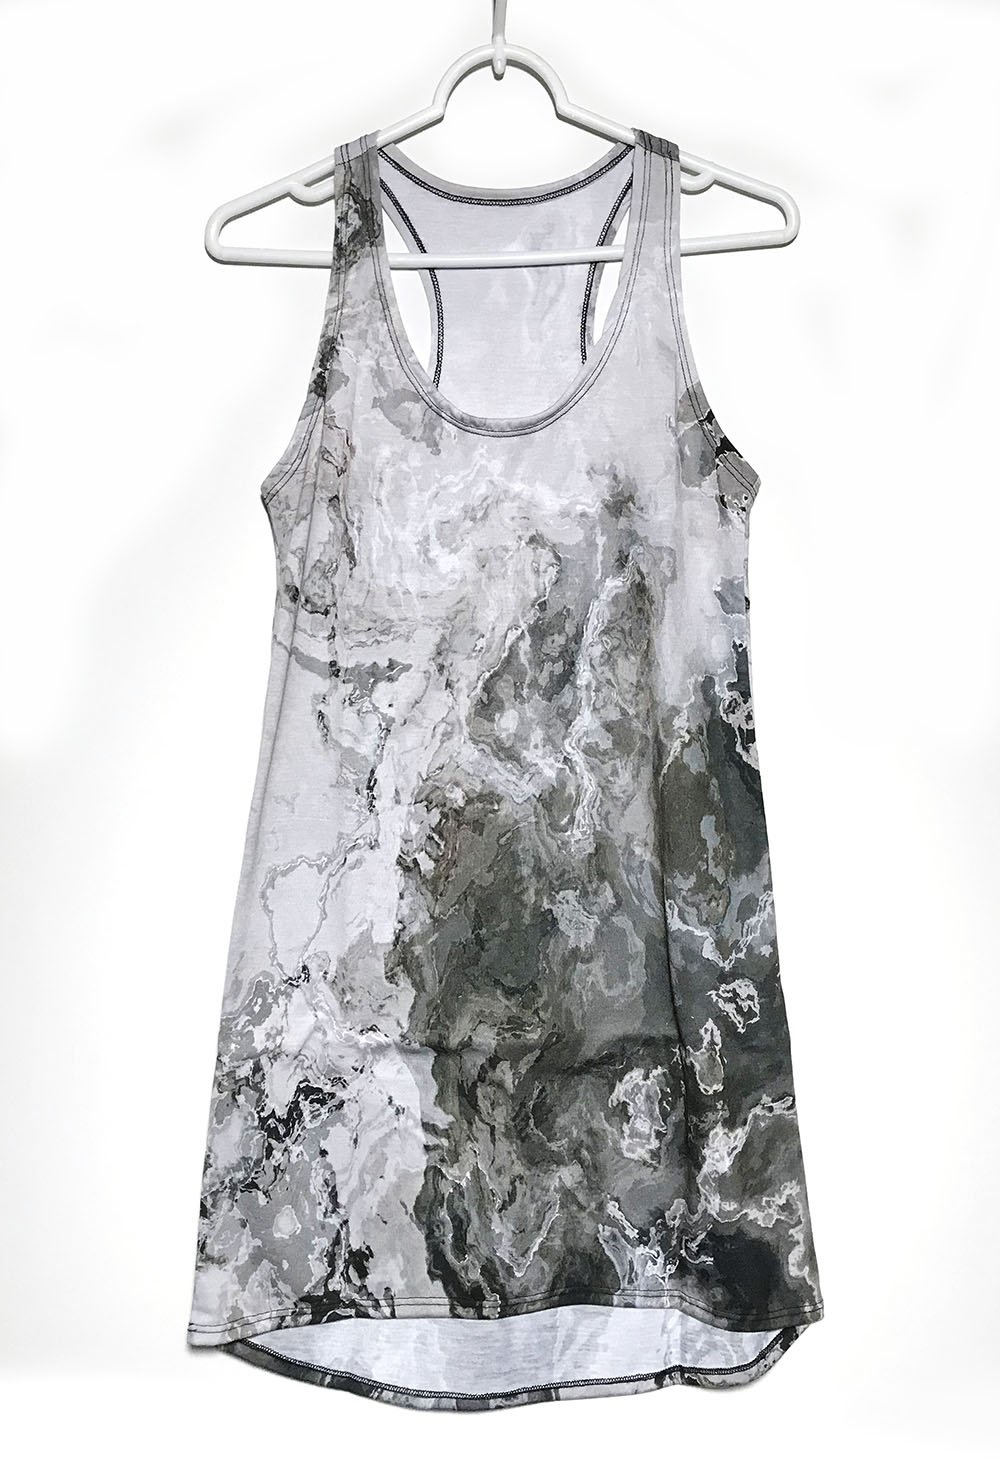 Racerback Mini Dress with wearable abstract art in warm gray, Geologic